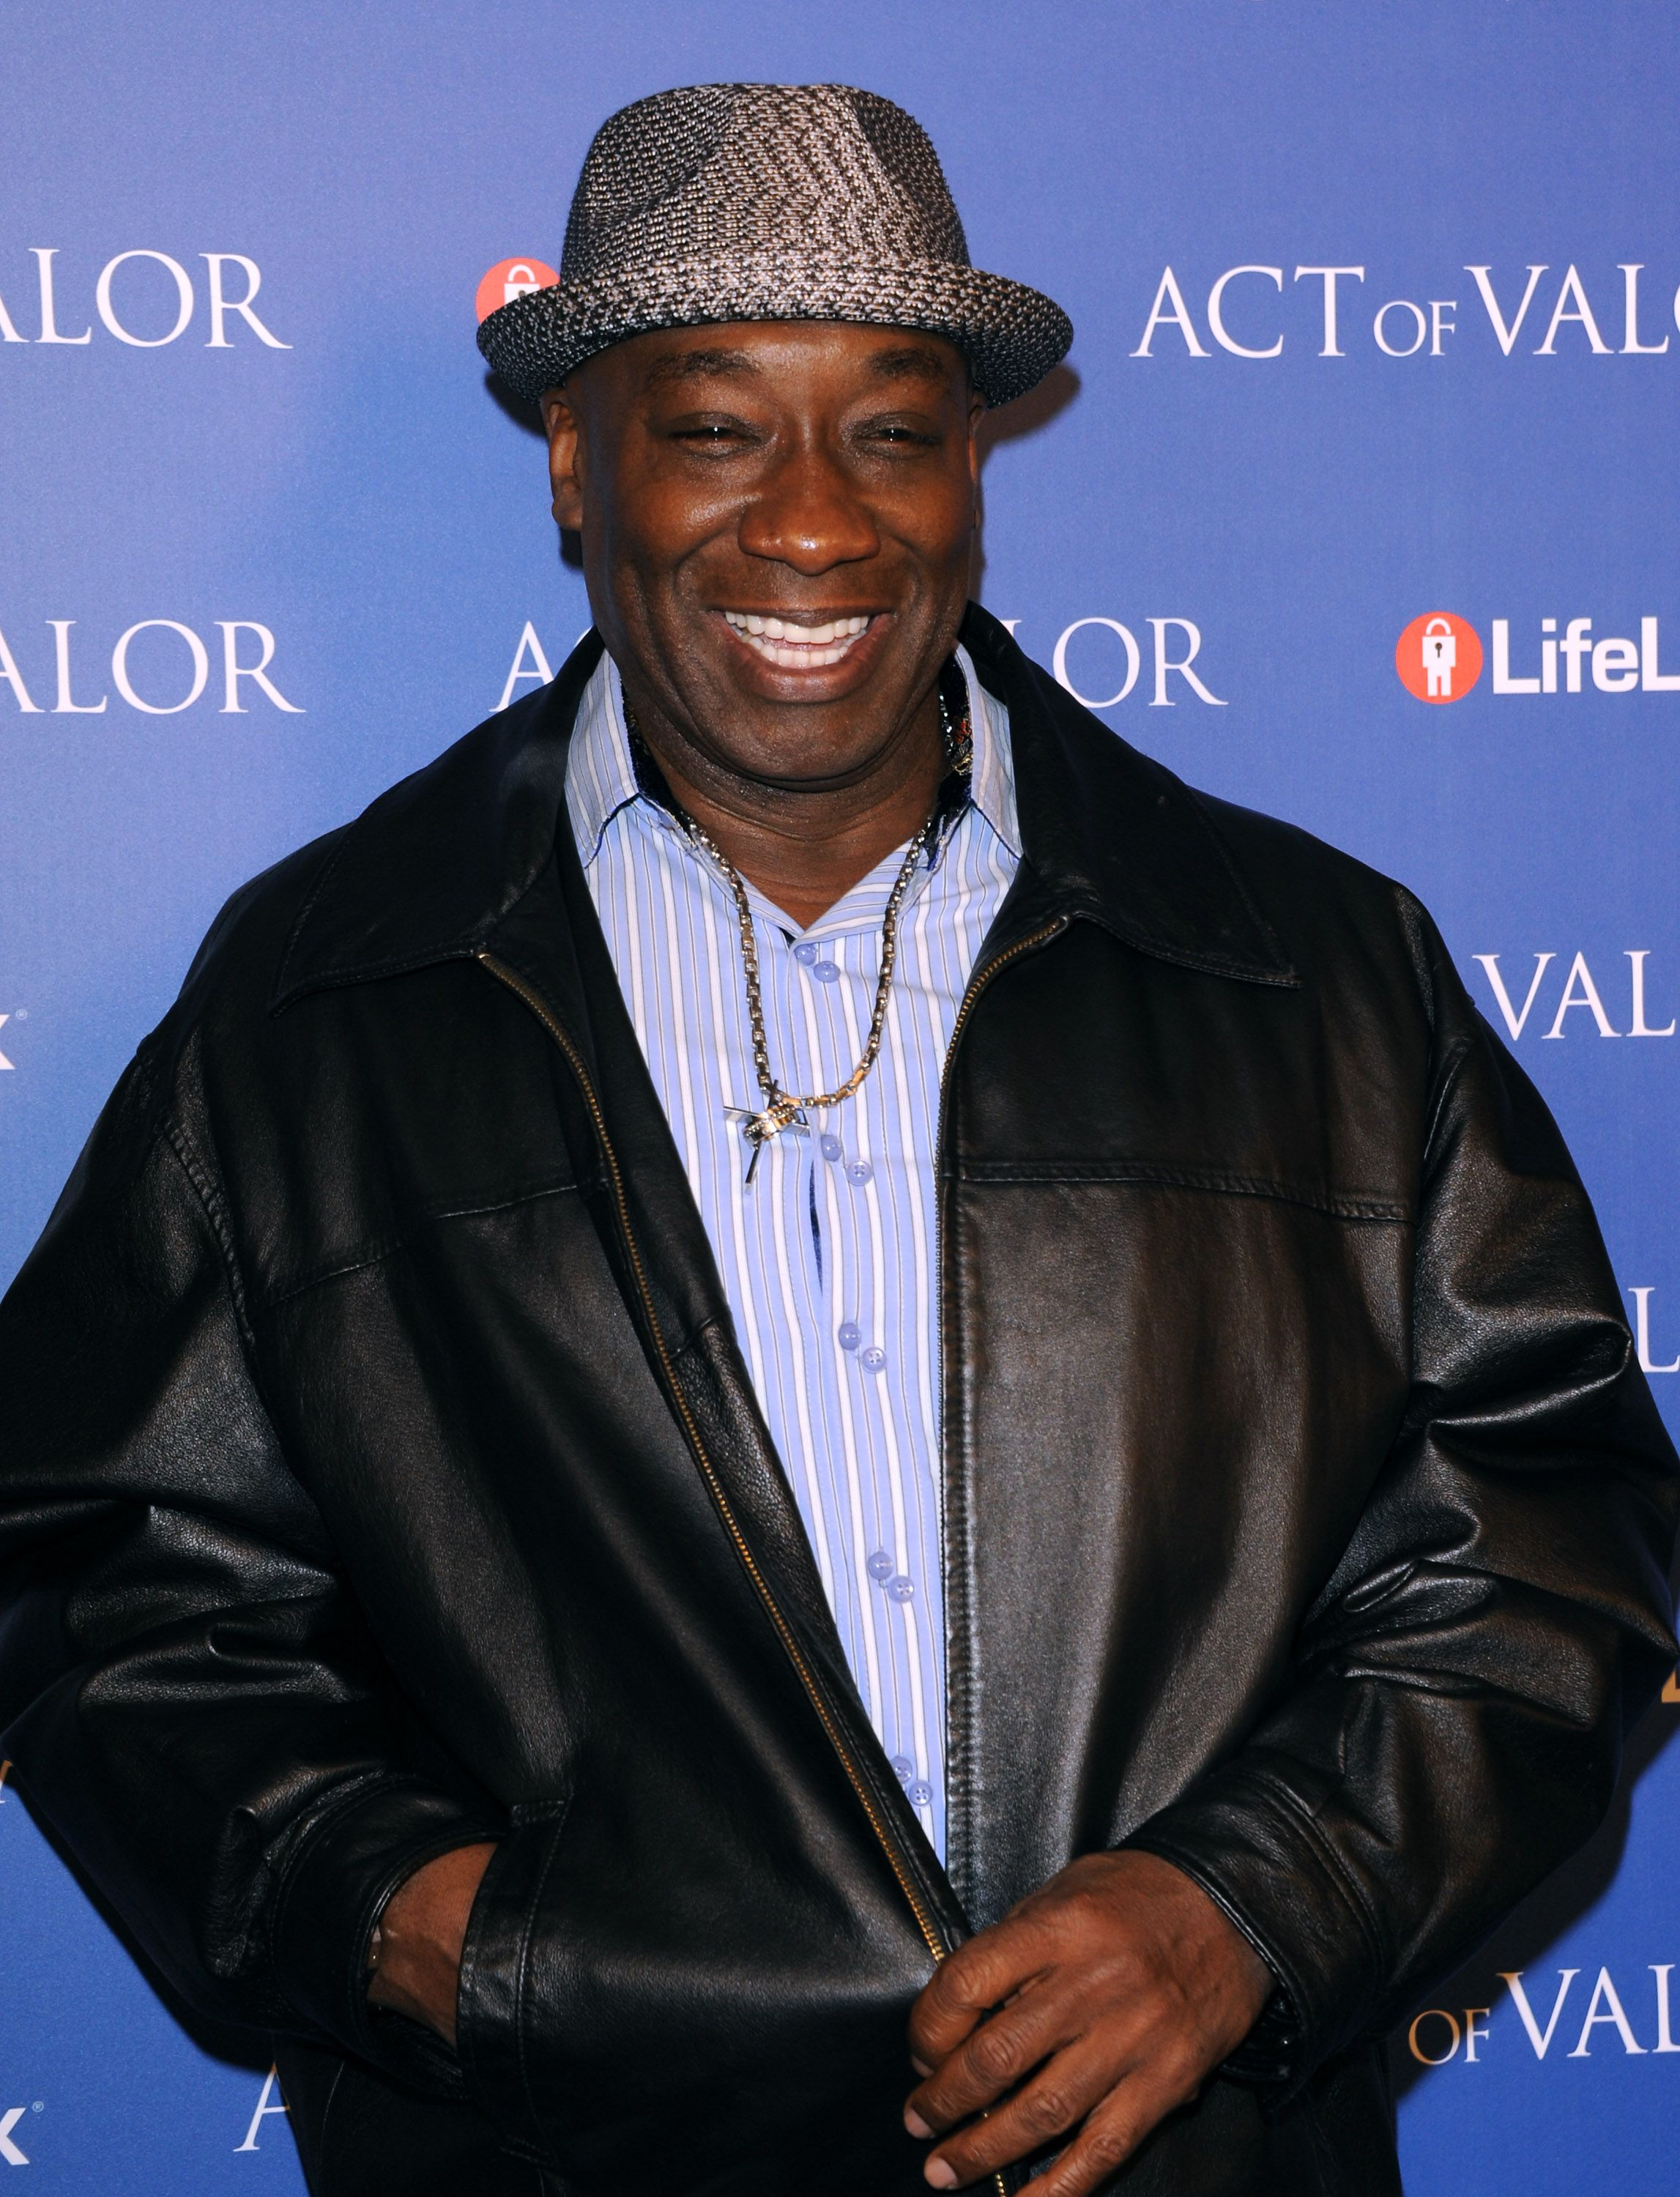 Michael Clarke Duncan attends the premiere of Relativity Media's 'Act of Valor' at ArcLight Cinemas on February 13, 2012  | Photo: Getty Images